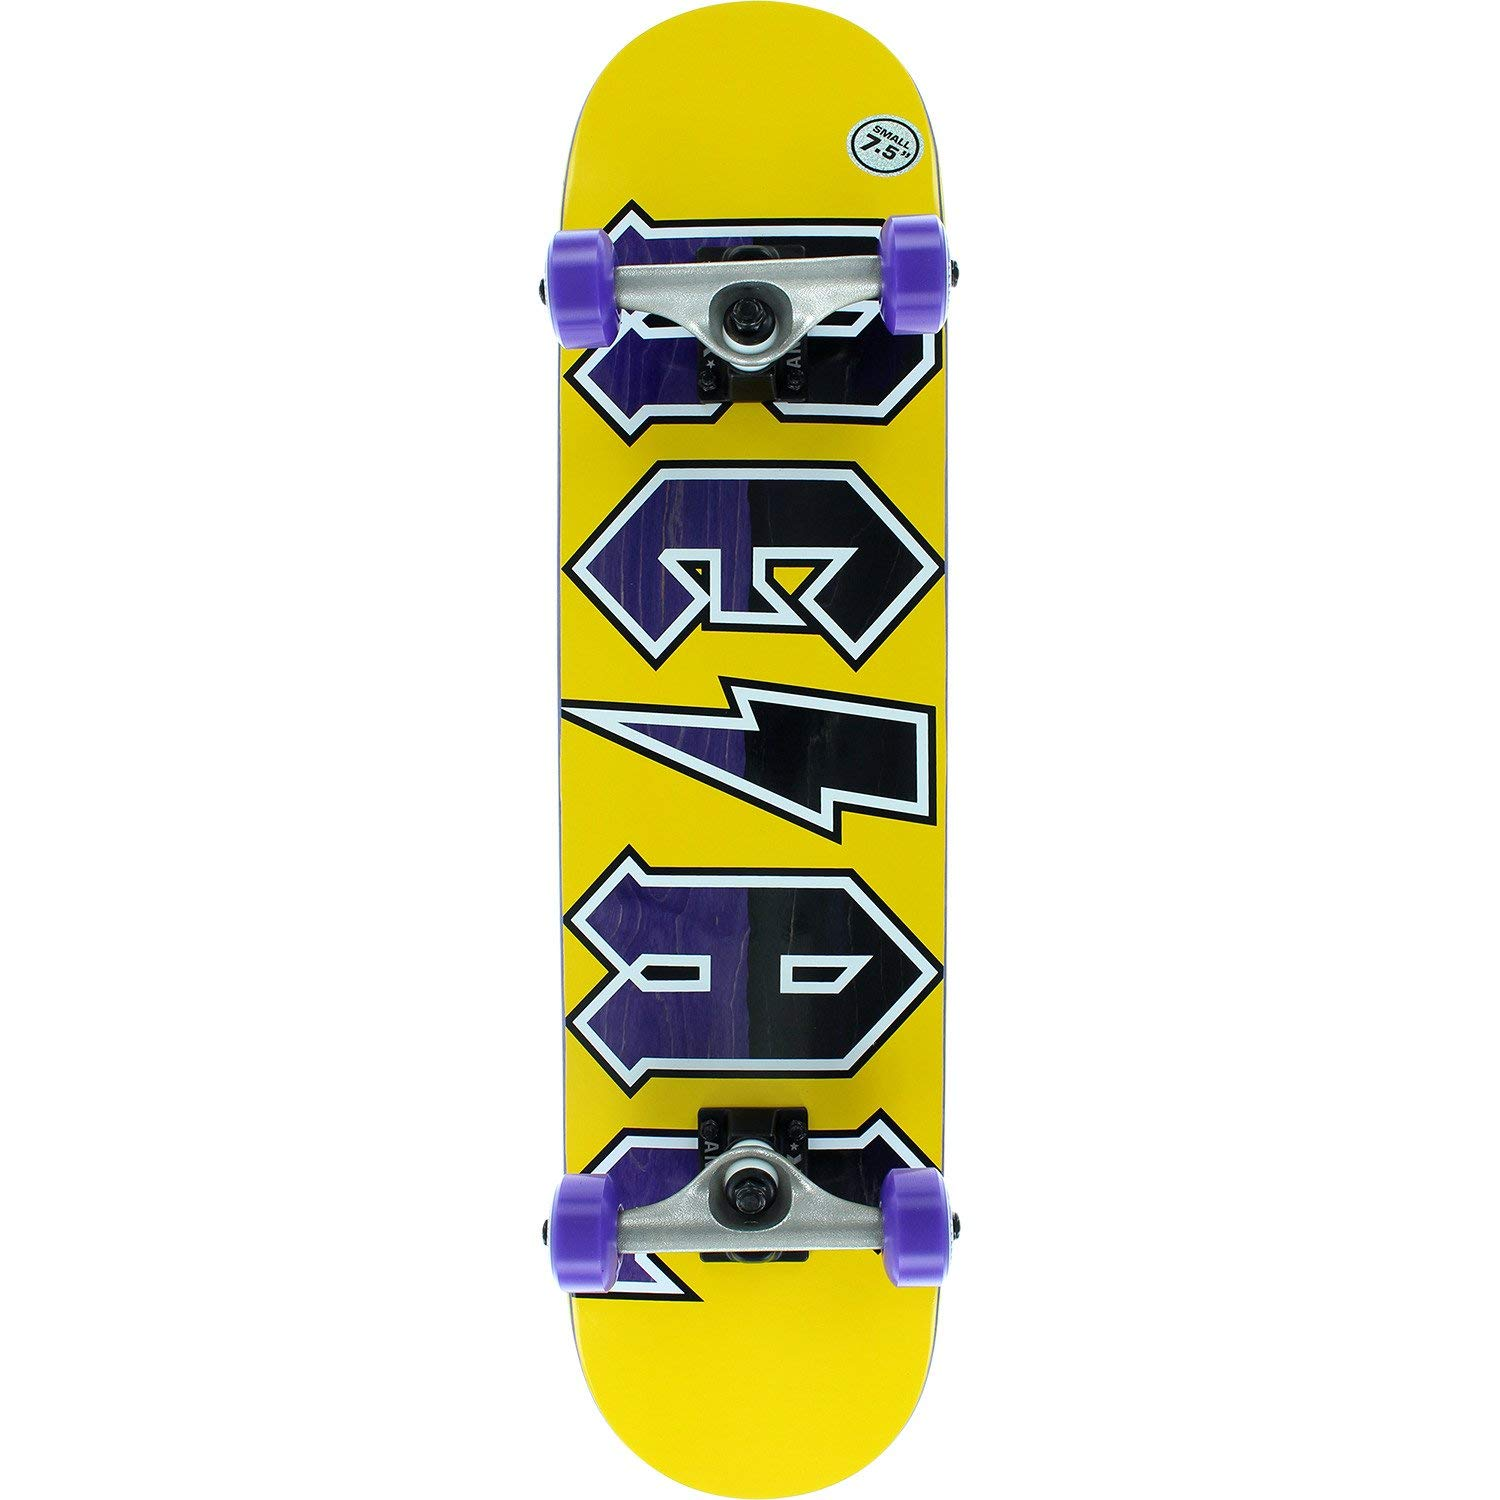 "Real Skateboards New Deeds Small Yellow/purple / Black Mid Complete Skateboards - 7.5"" x 31"""